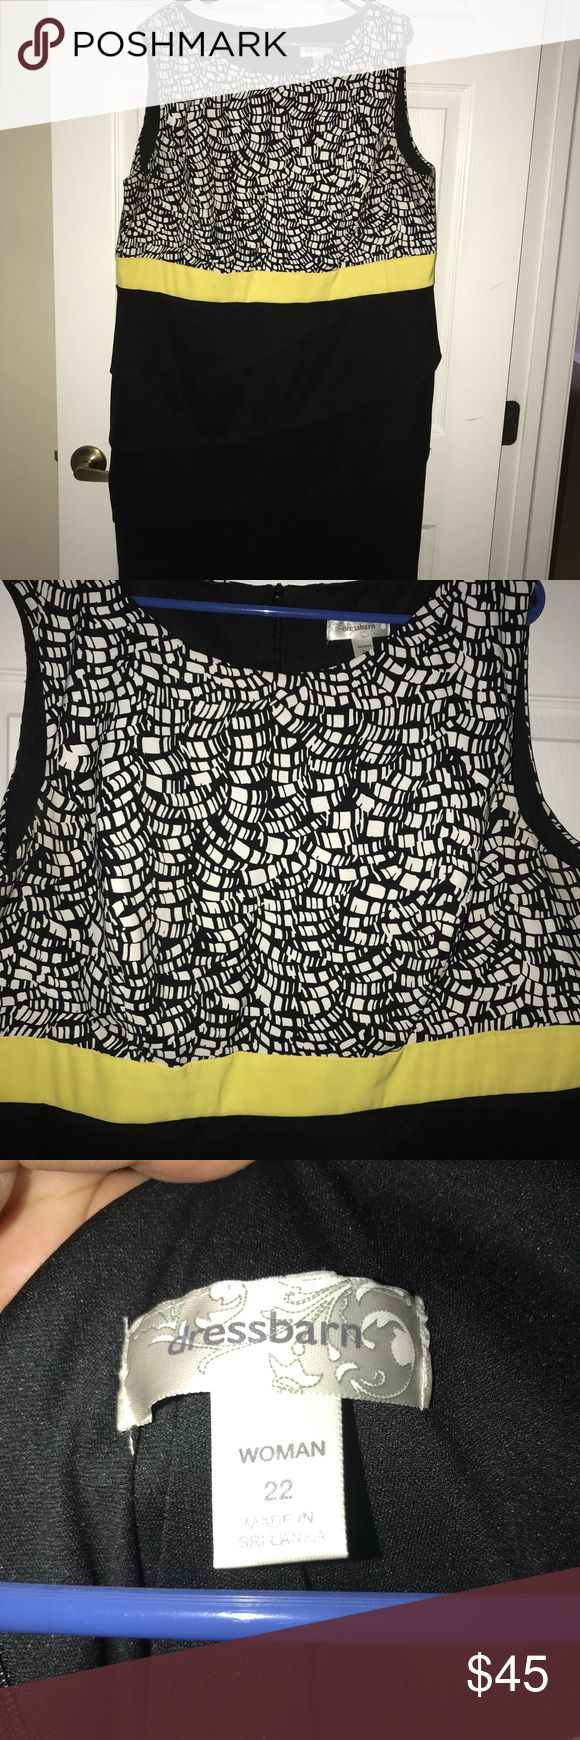 DressBarn multi color dress Multicolored dress from DressBarn. Colored are black, white and a bright yellow size 22 Dress Barn Dresses